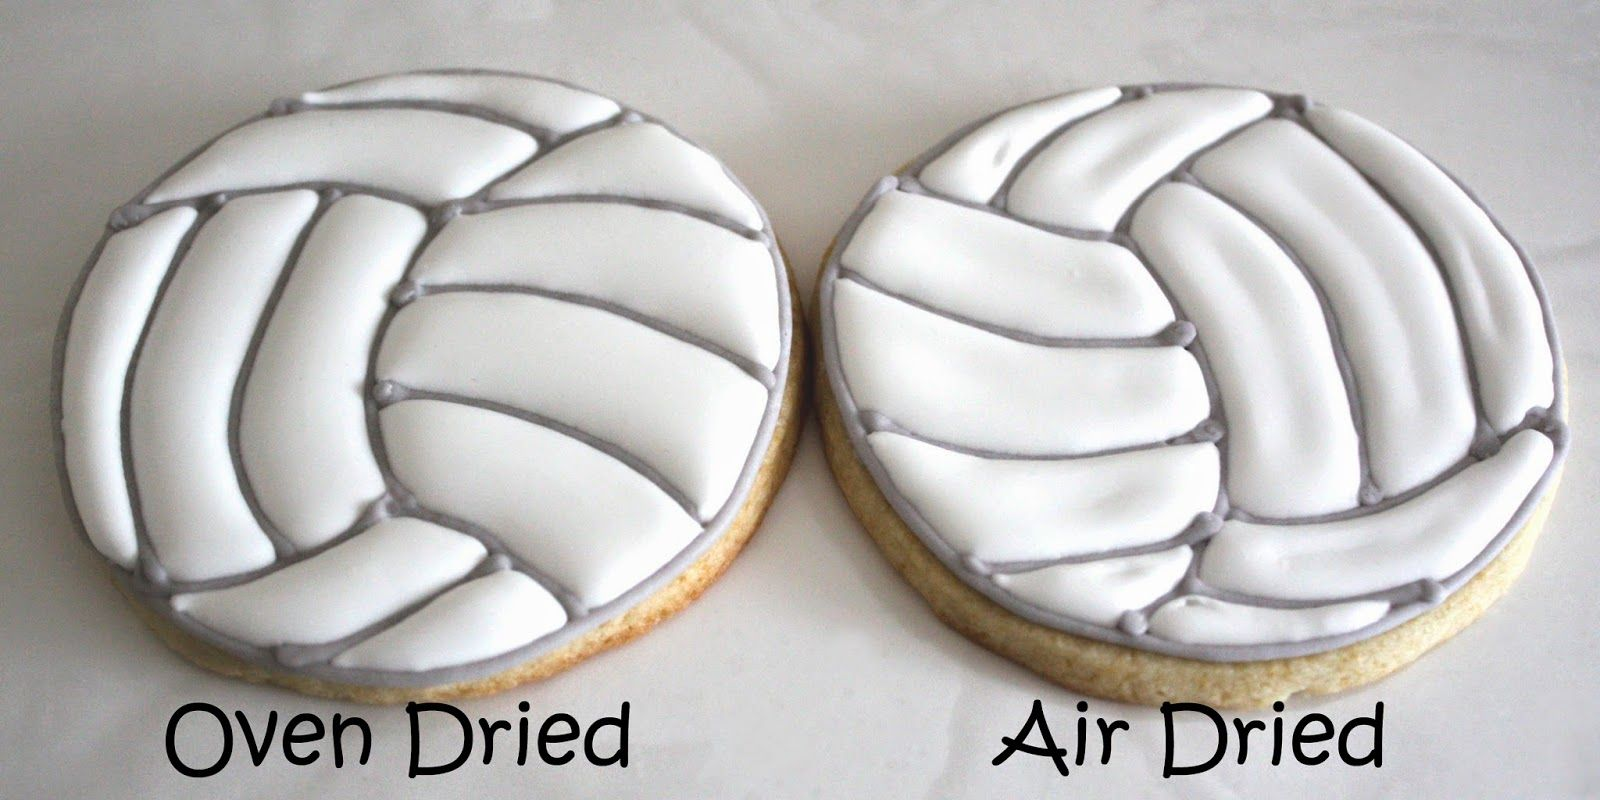 Pin By Mike Loll On Volleyball Icing Cookies Tutorial Royal Iced Cookies Sugar Cookie Designs